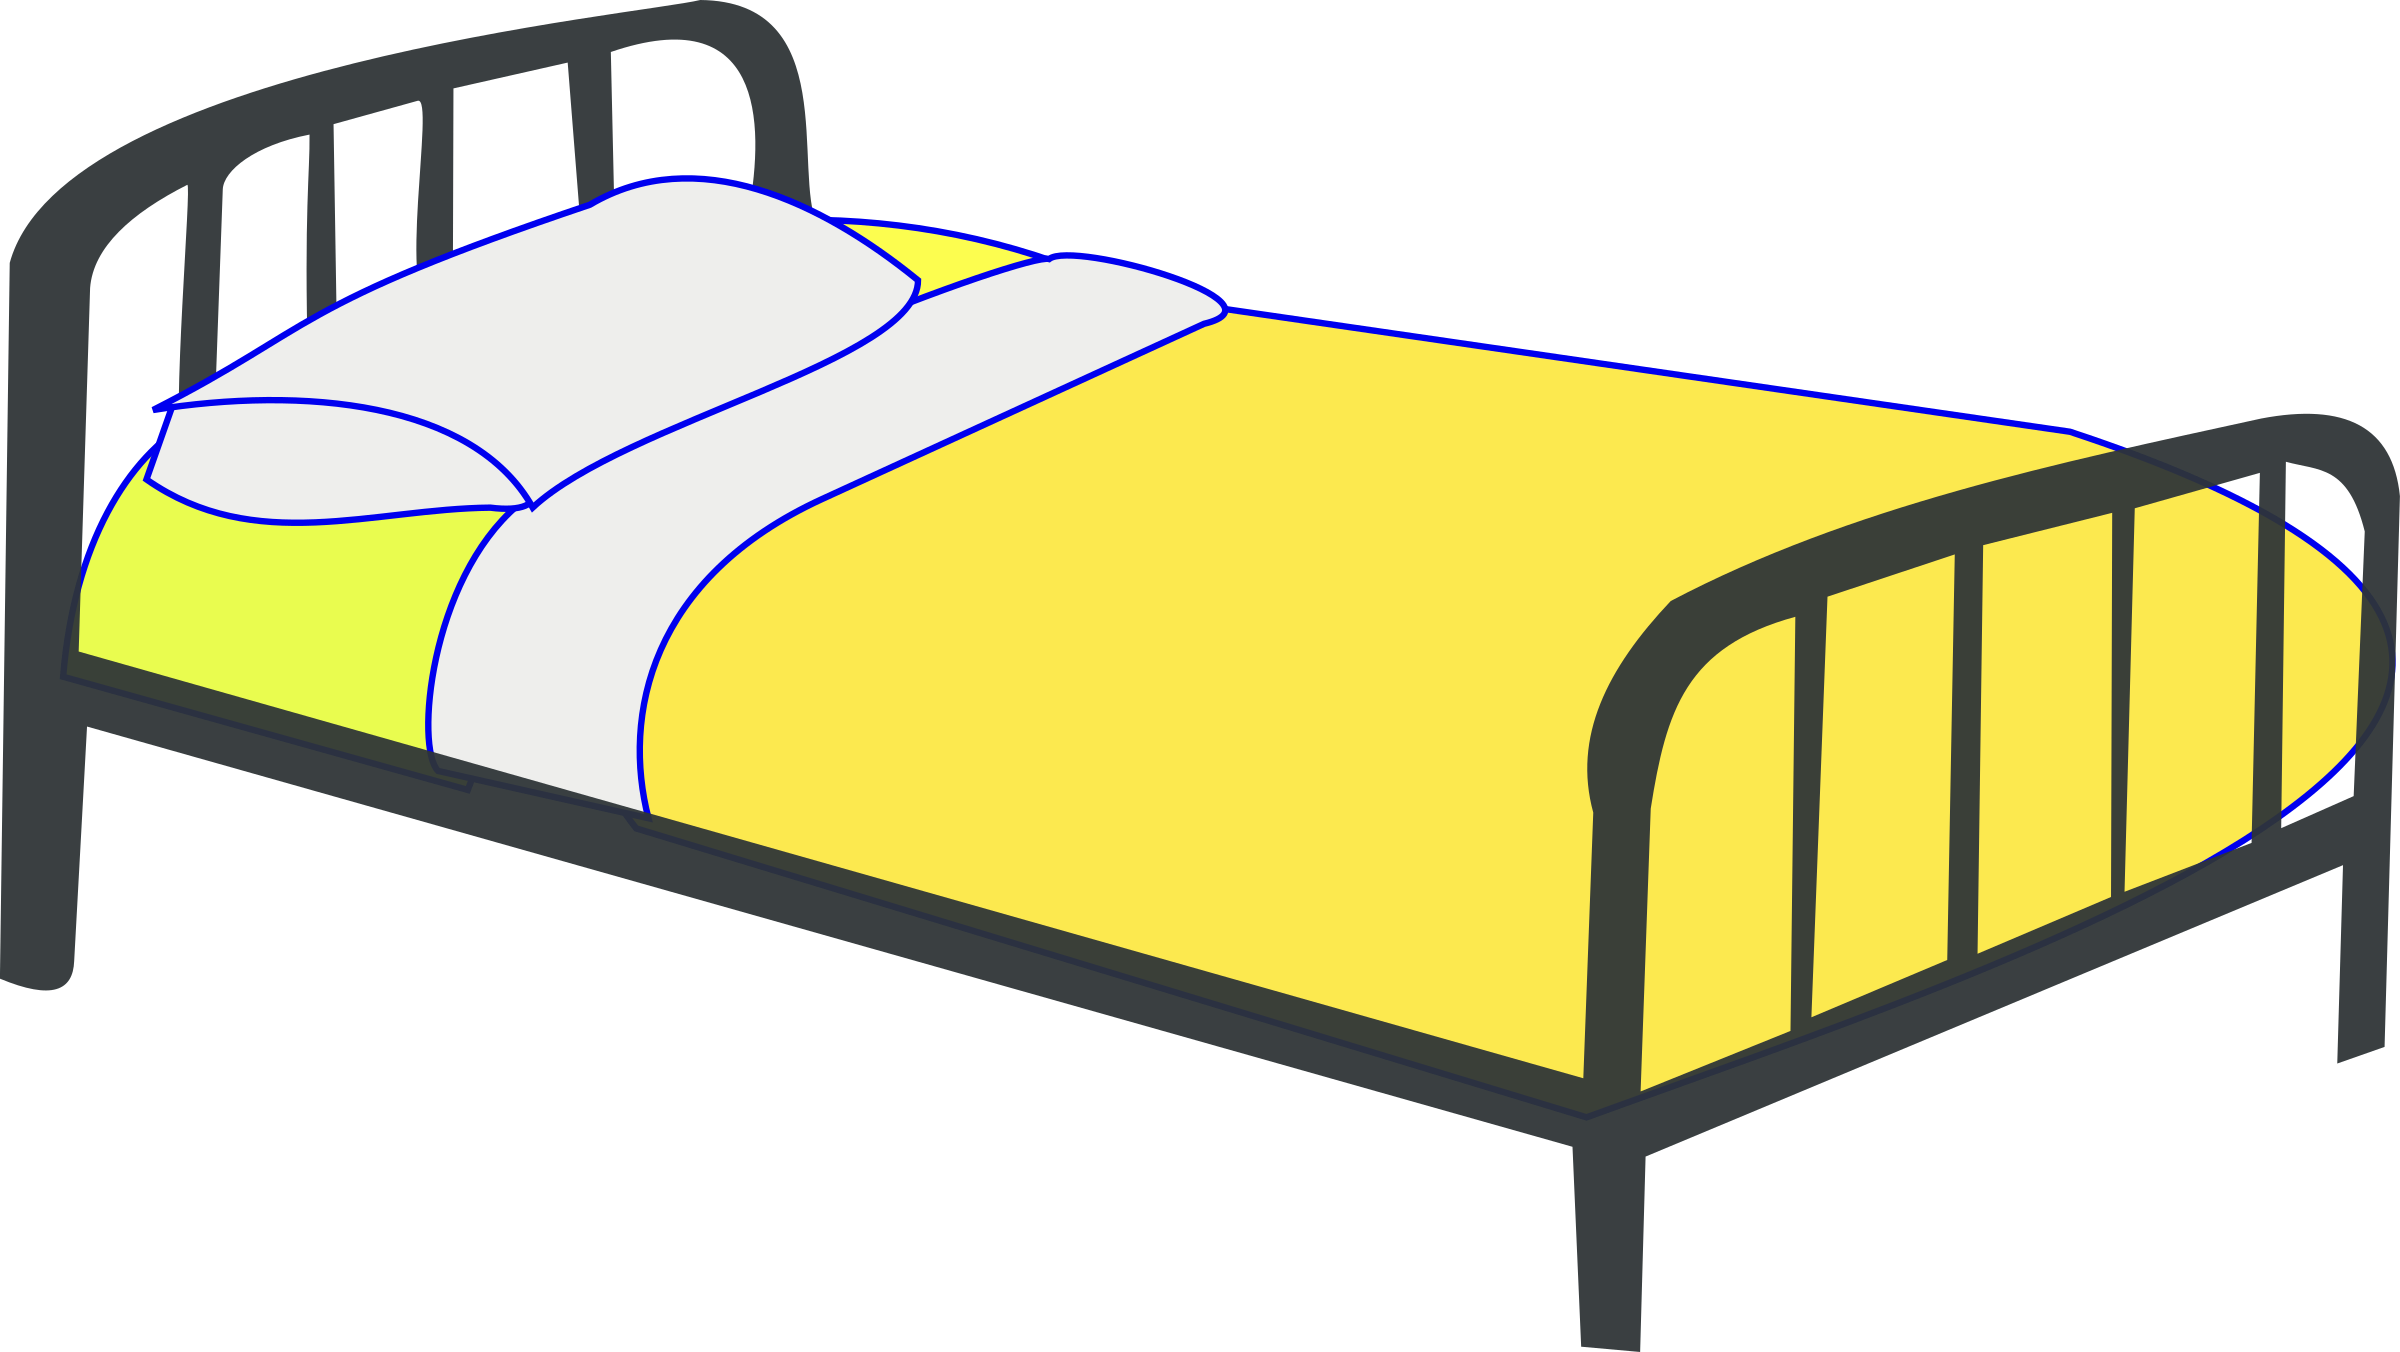 Clipart bed animated. Single big image png